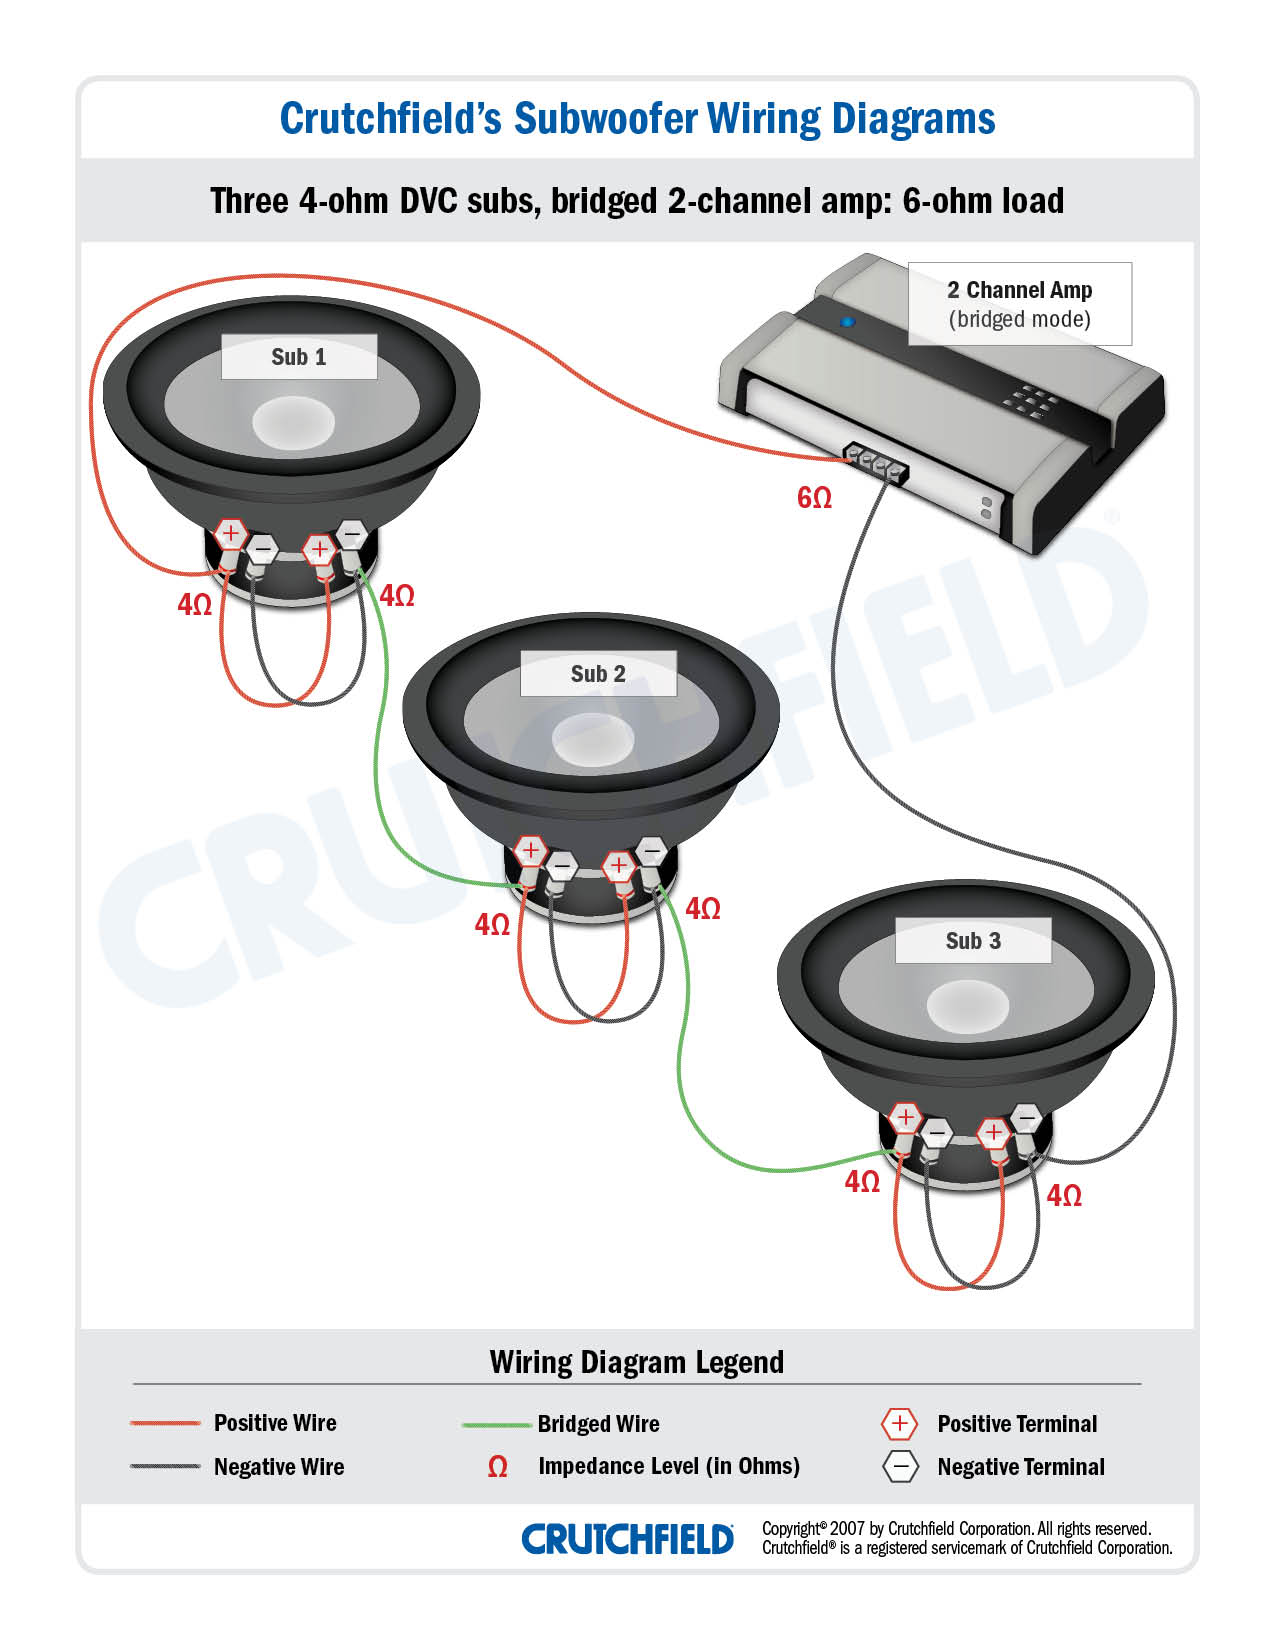 3 DVC 4 ohm 2 ch subwoofer wiring diagrams dual 4 ohm voice coil wiring diagram at crackthecode.co